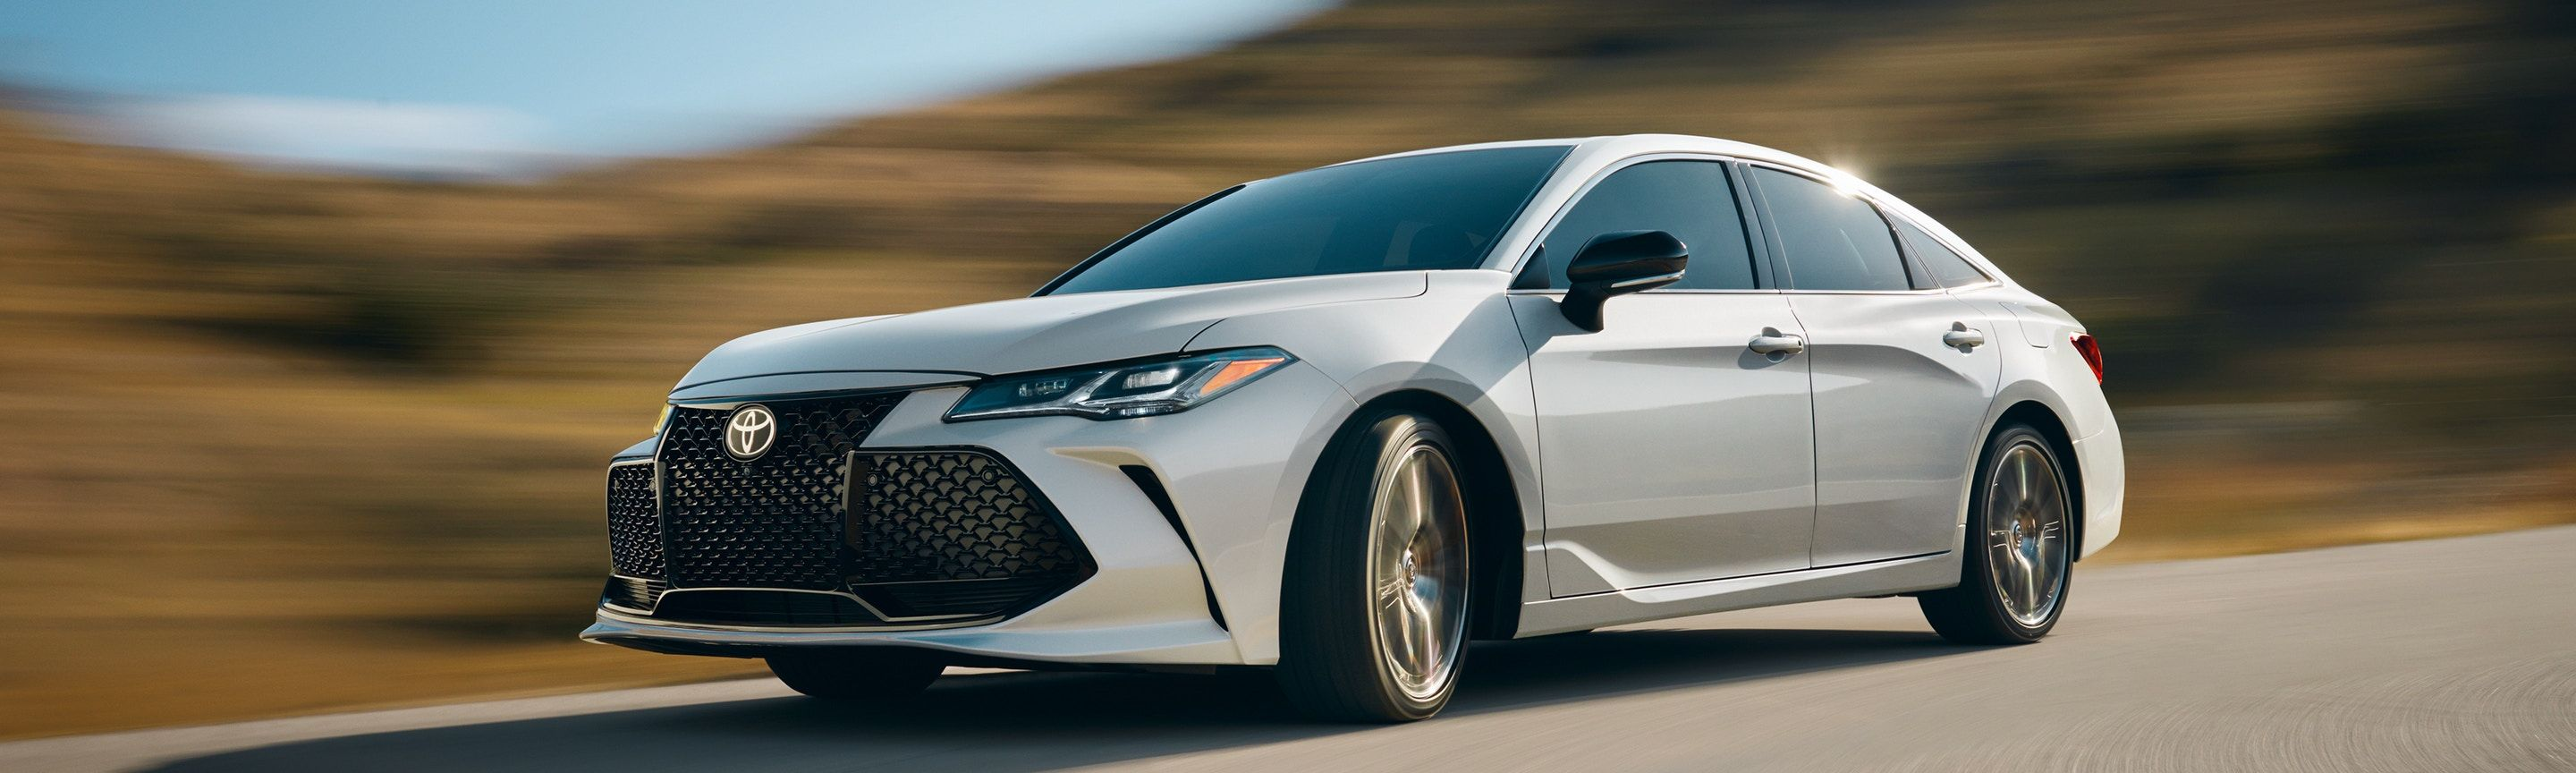 2019 Toyota Avalon for Sale near Stamford, CT